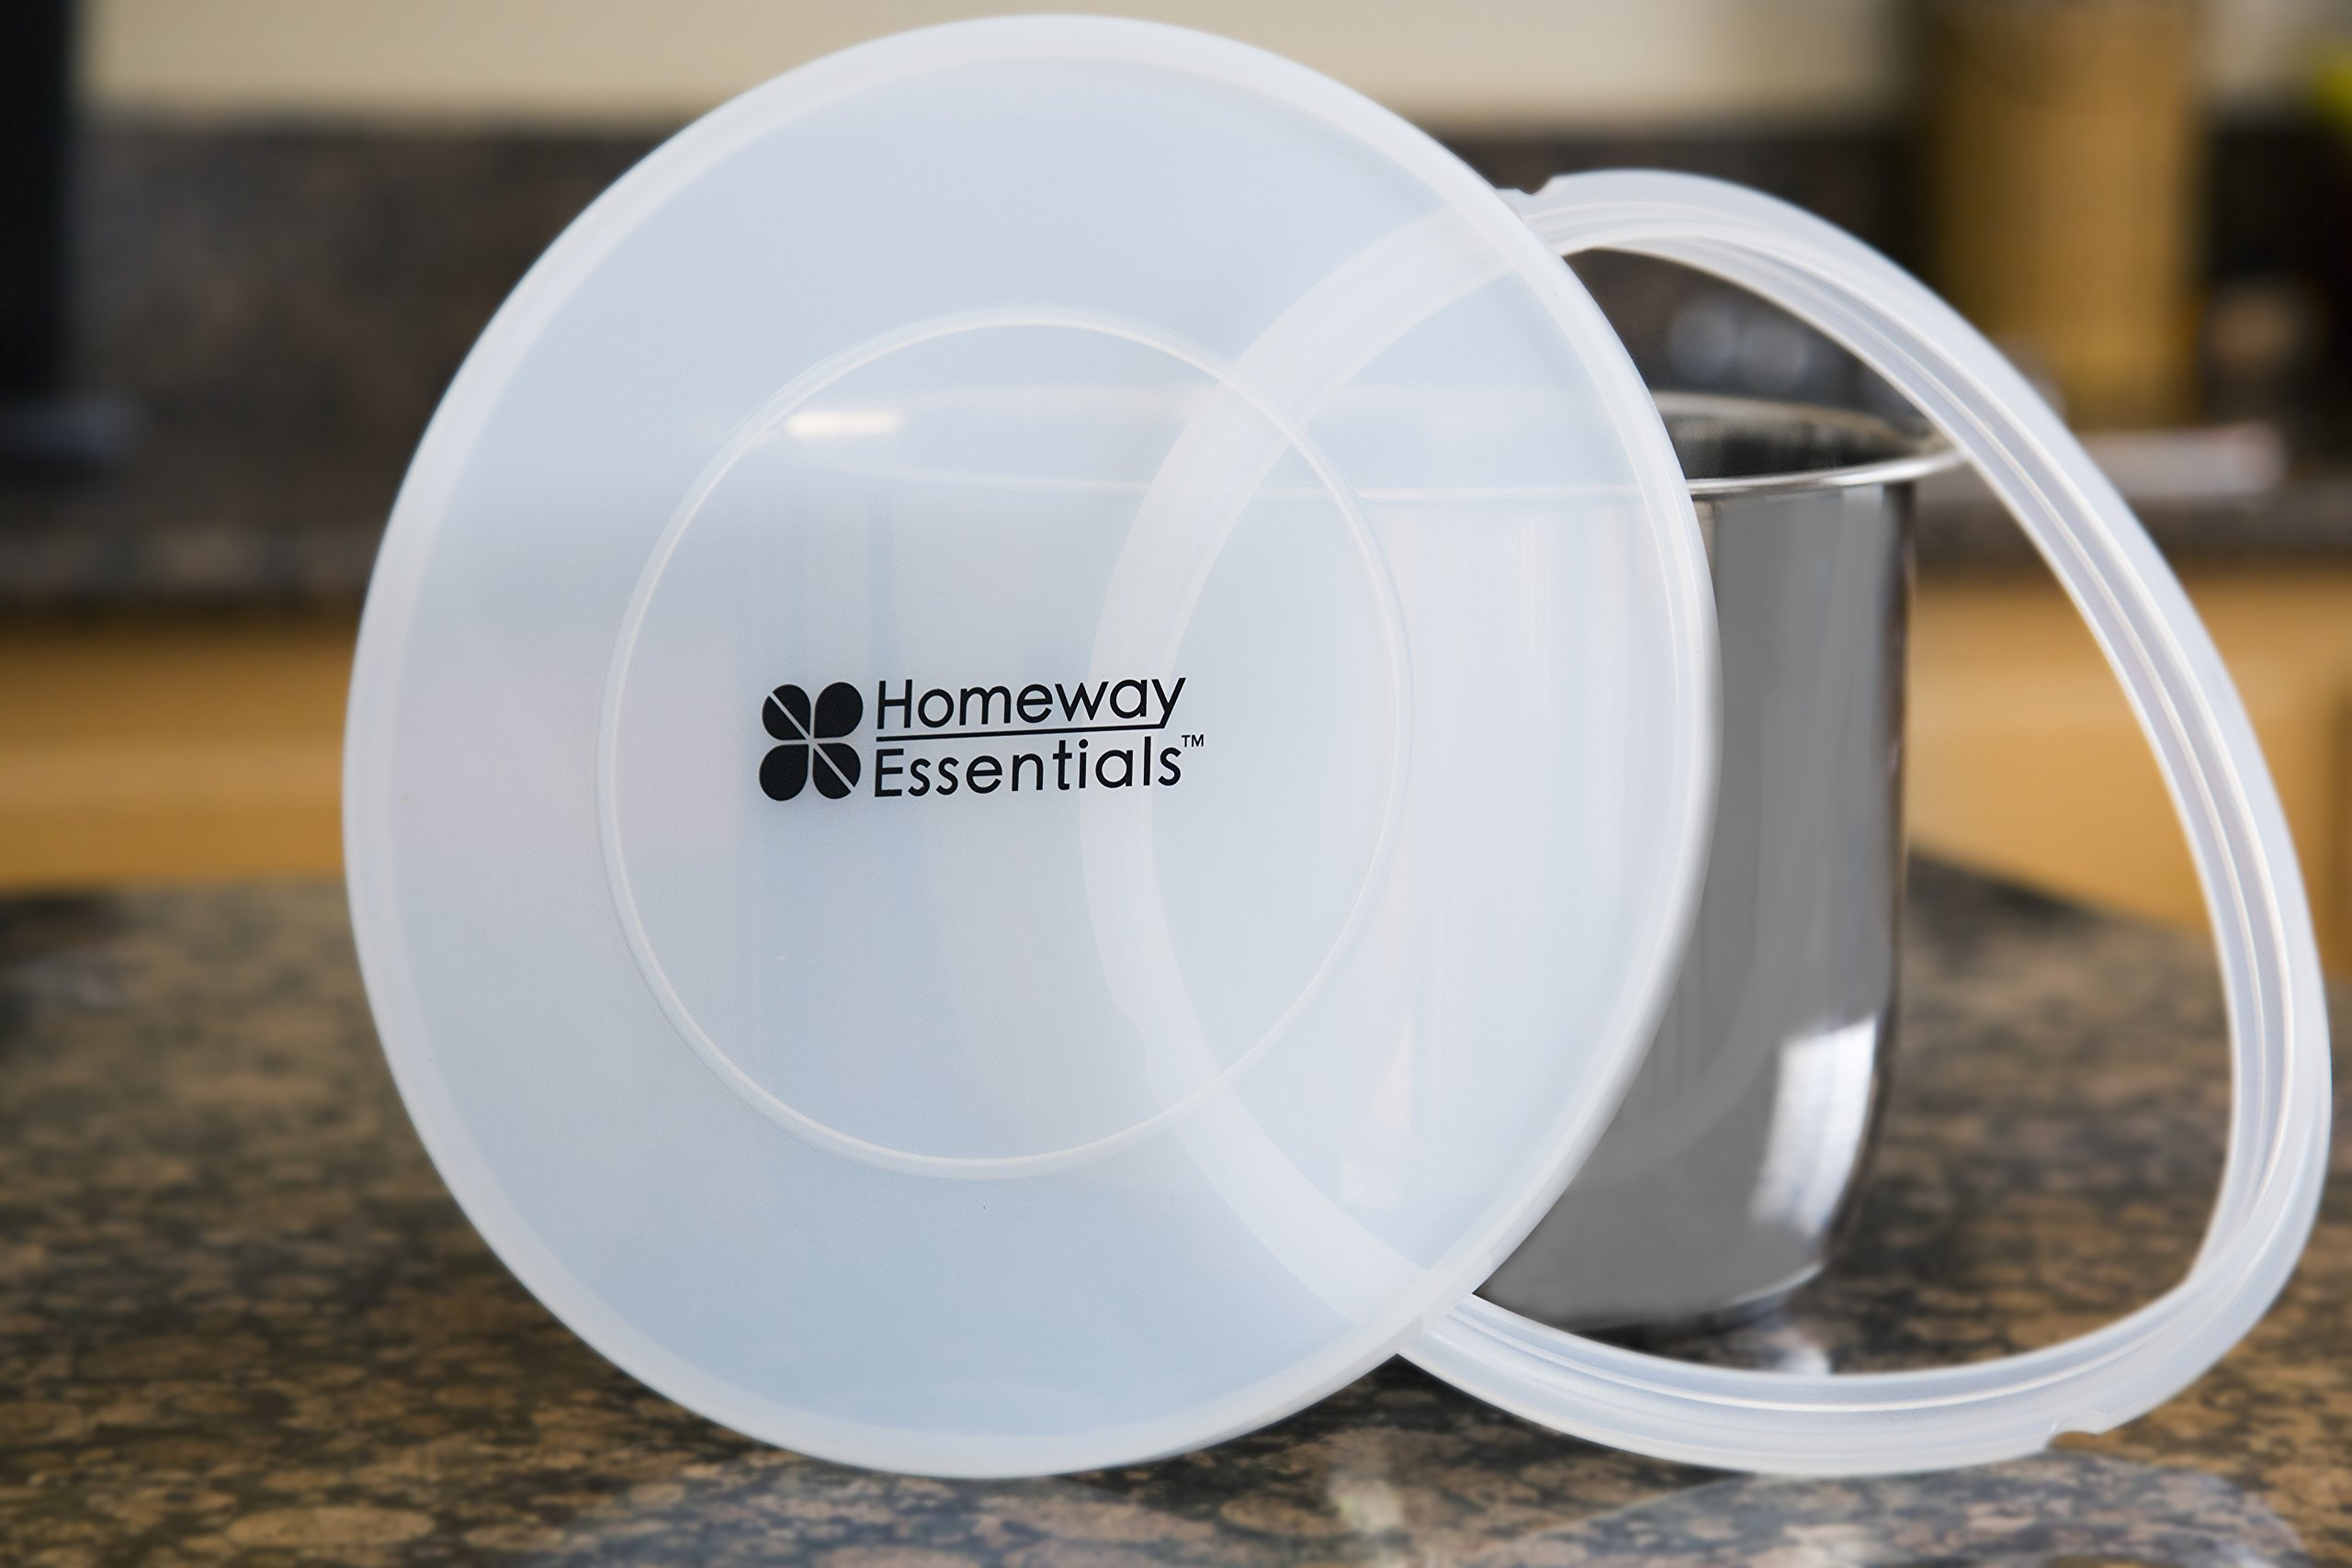 Homeway Essentials Instant Pot Lid and Sealing Ring - Ultimate Value Bundle - Best fitting Lid for InstaPot - [fits 6 Qt only]